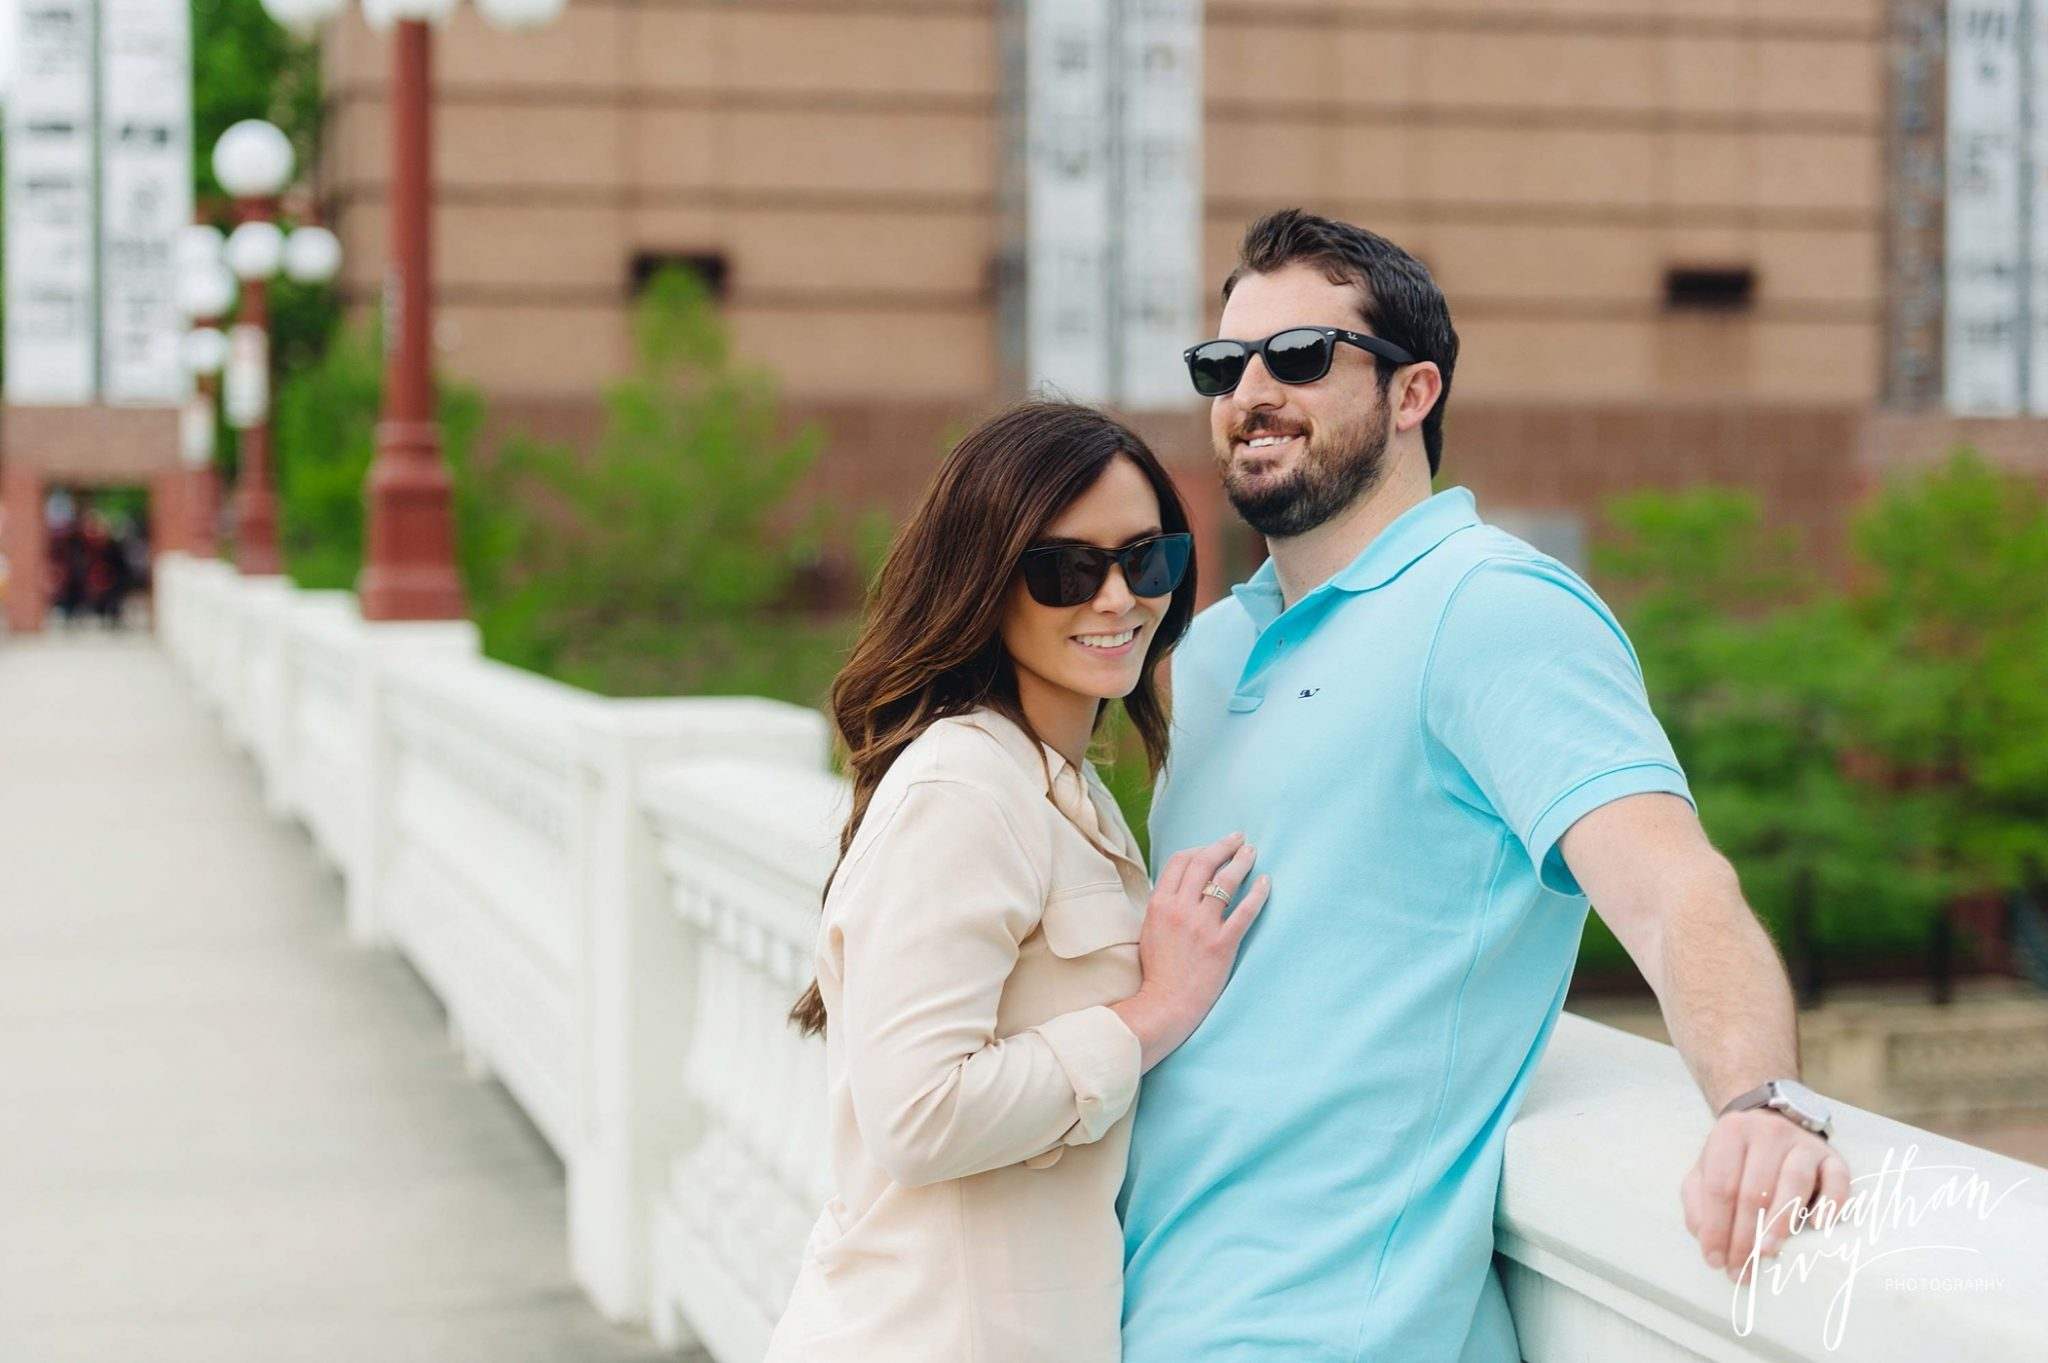 Ray Ban Sunglasses Engagement